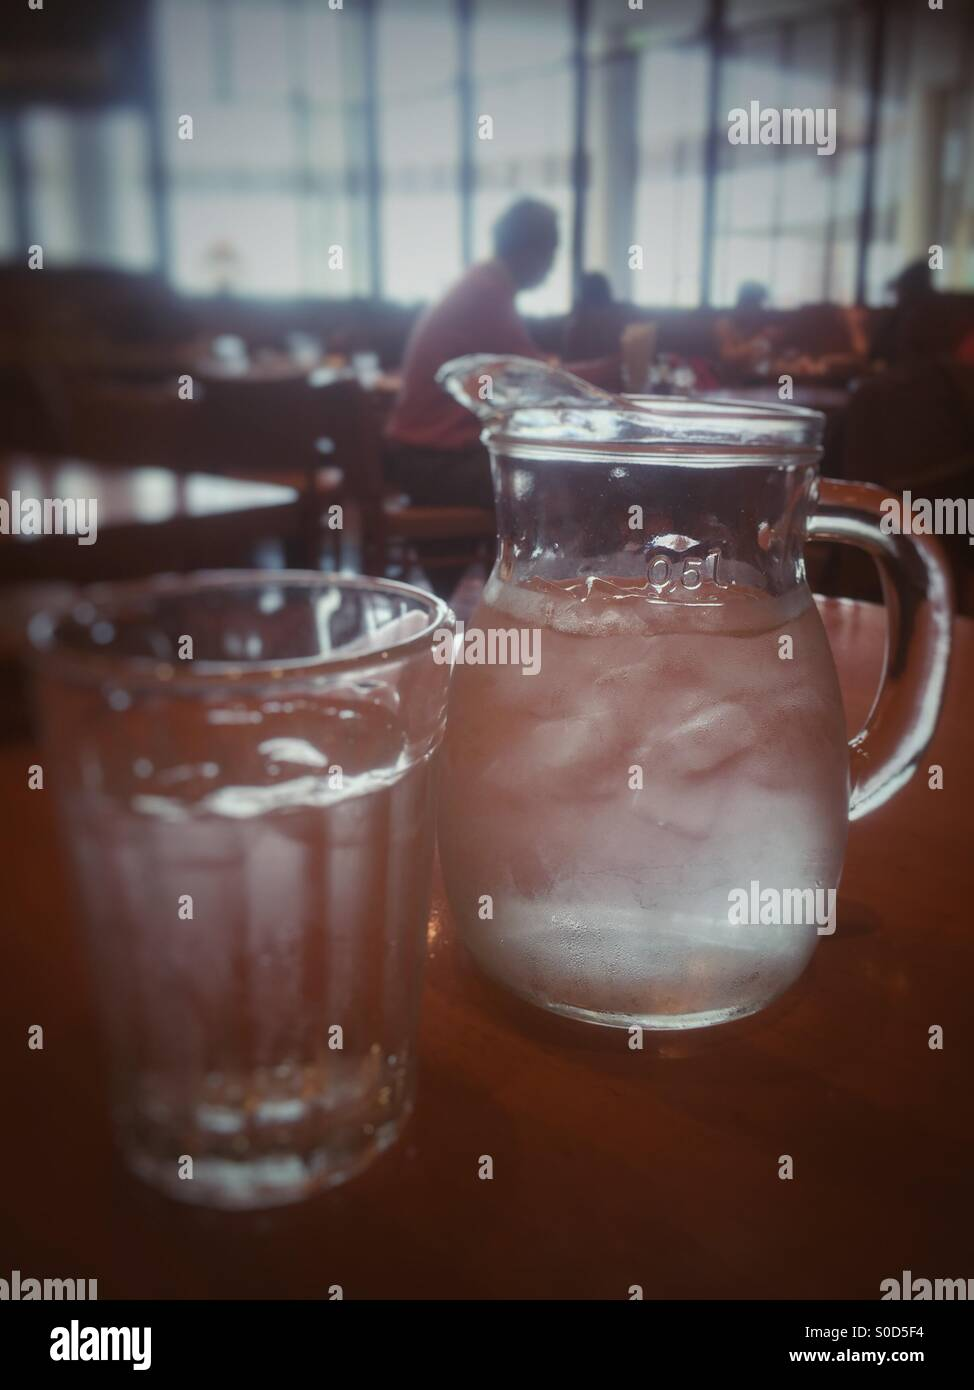 Pitcher and glass of ice water in a restaurant. Retro, faded look. Stock Photo